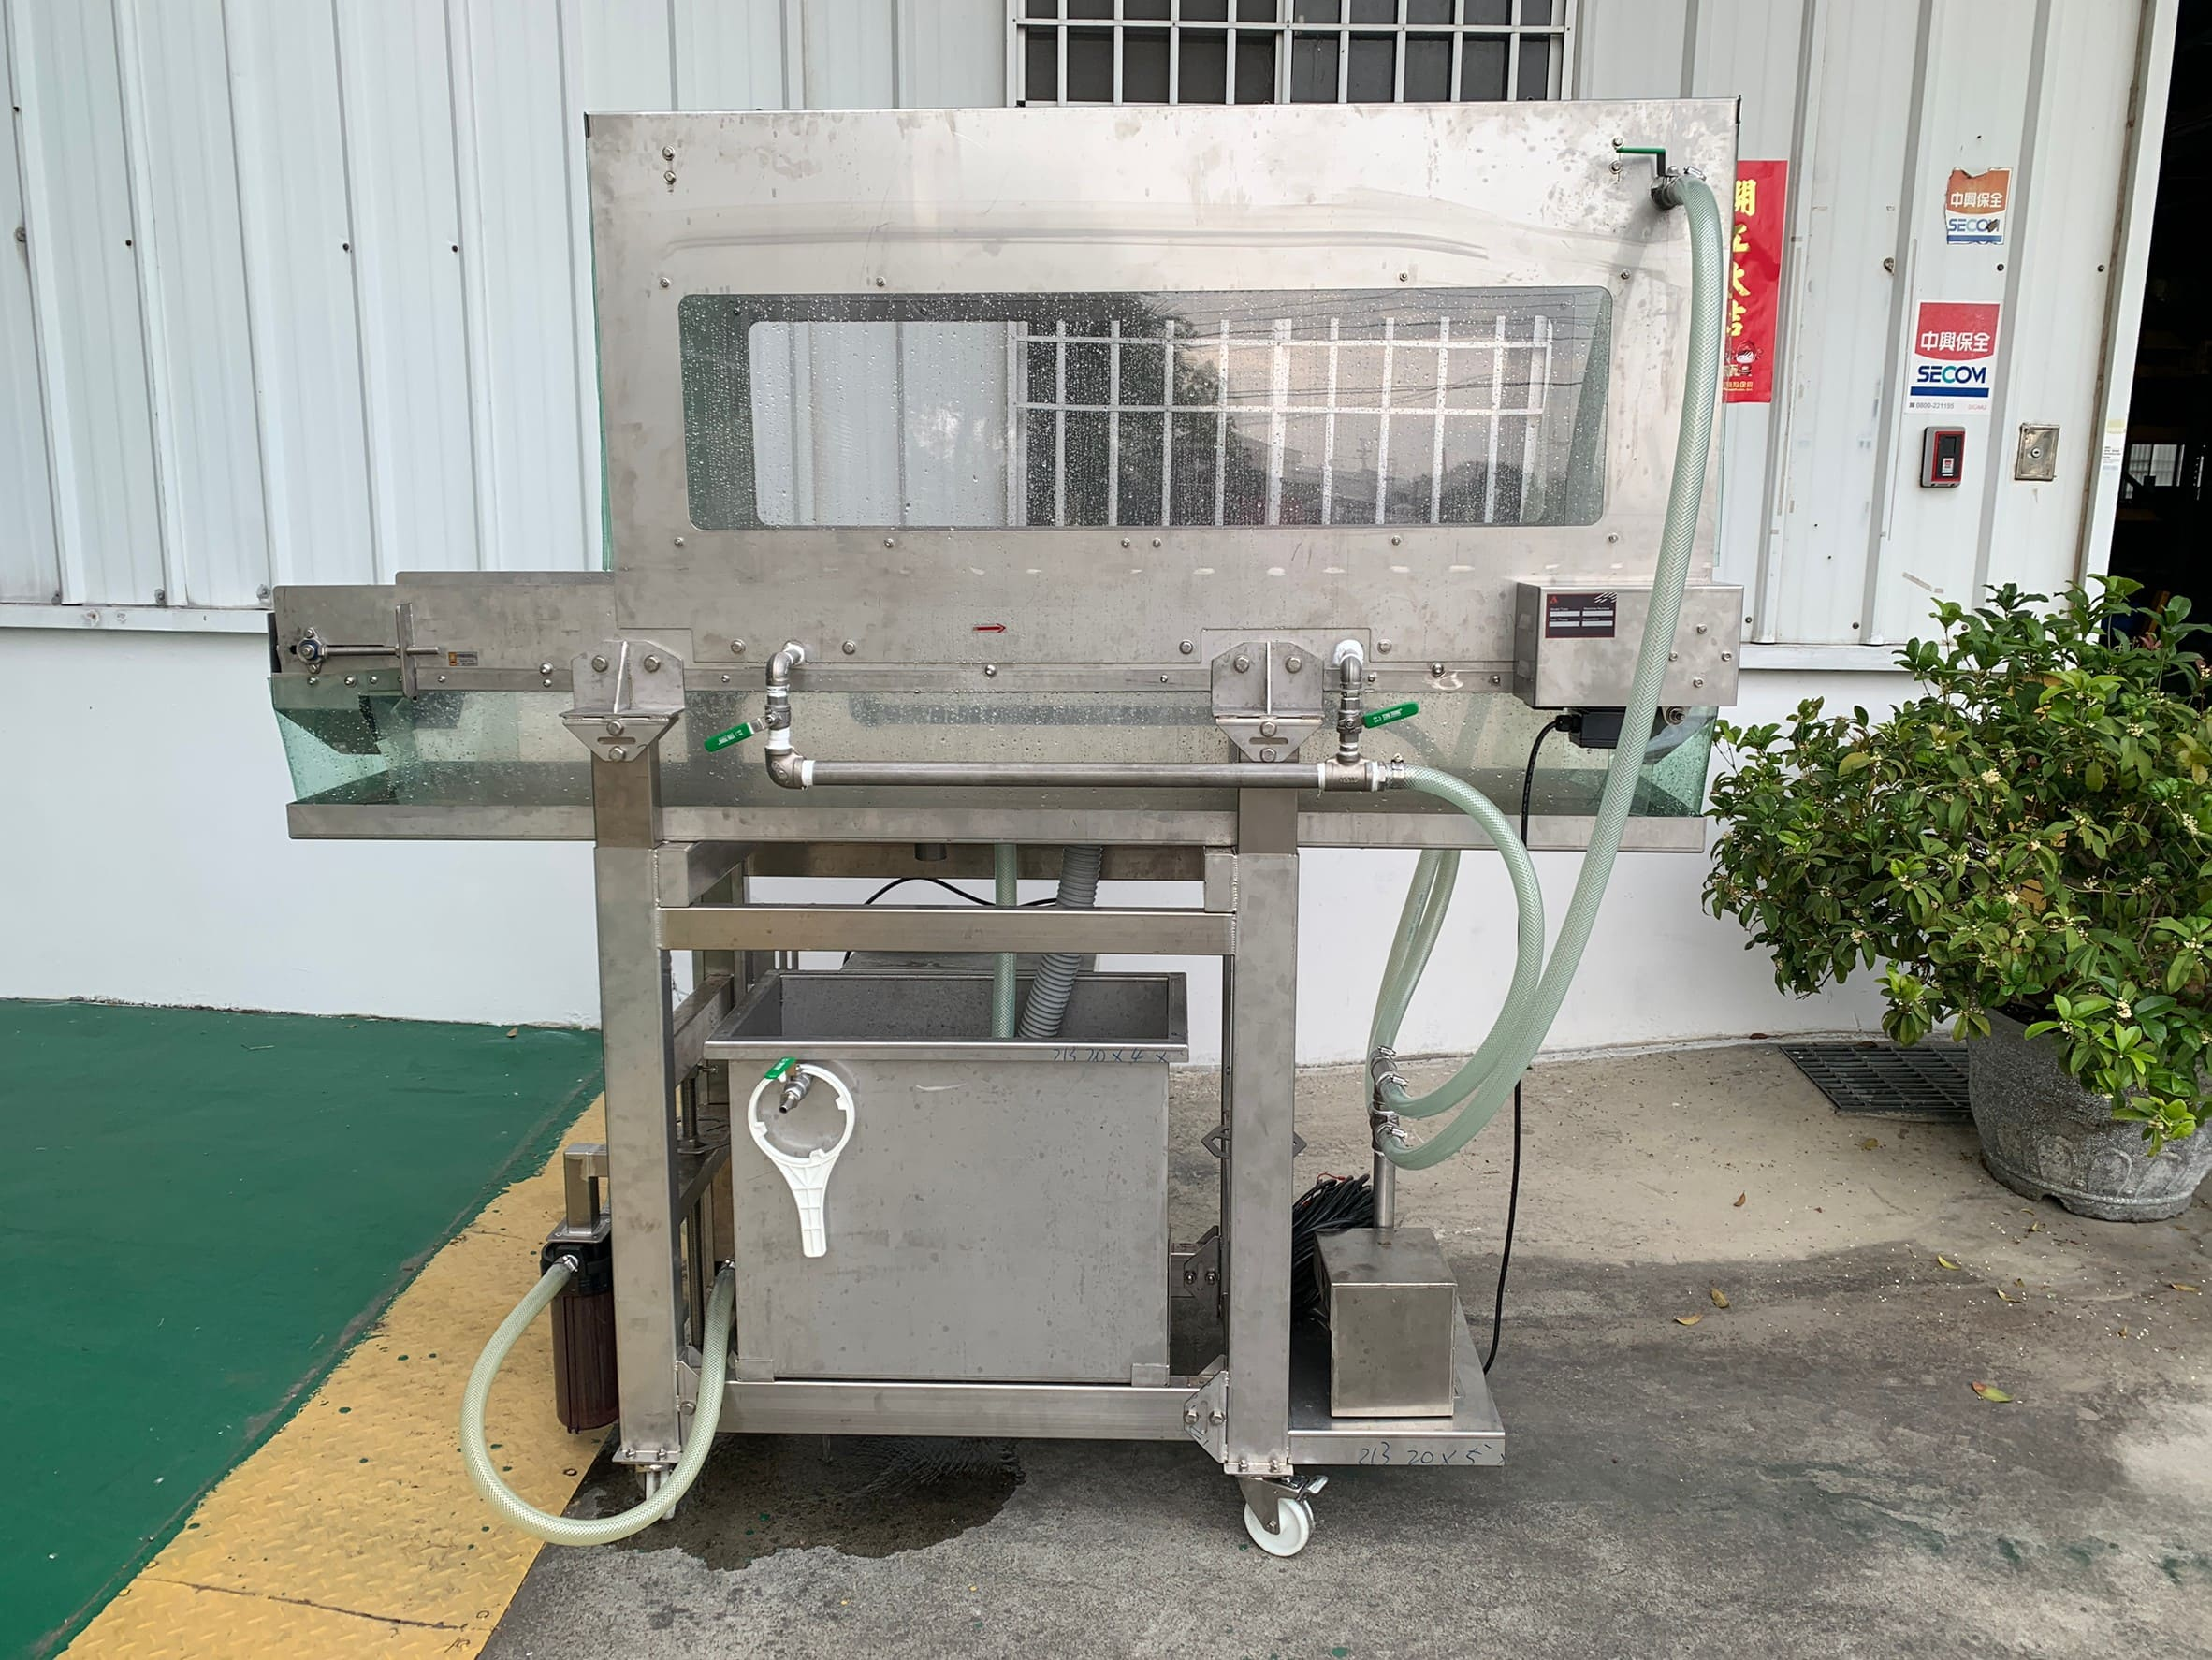 Sprinkler Stainless Steel Conveyor Equipped With Plastic Net-Lichen Conveyor Automatic Equipment Co., Ltd.